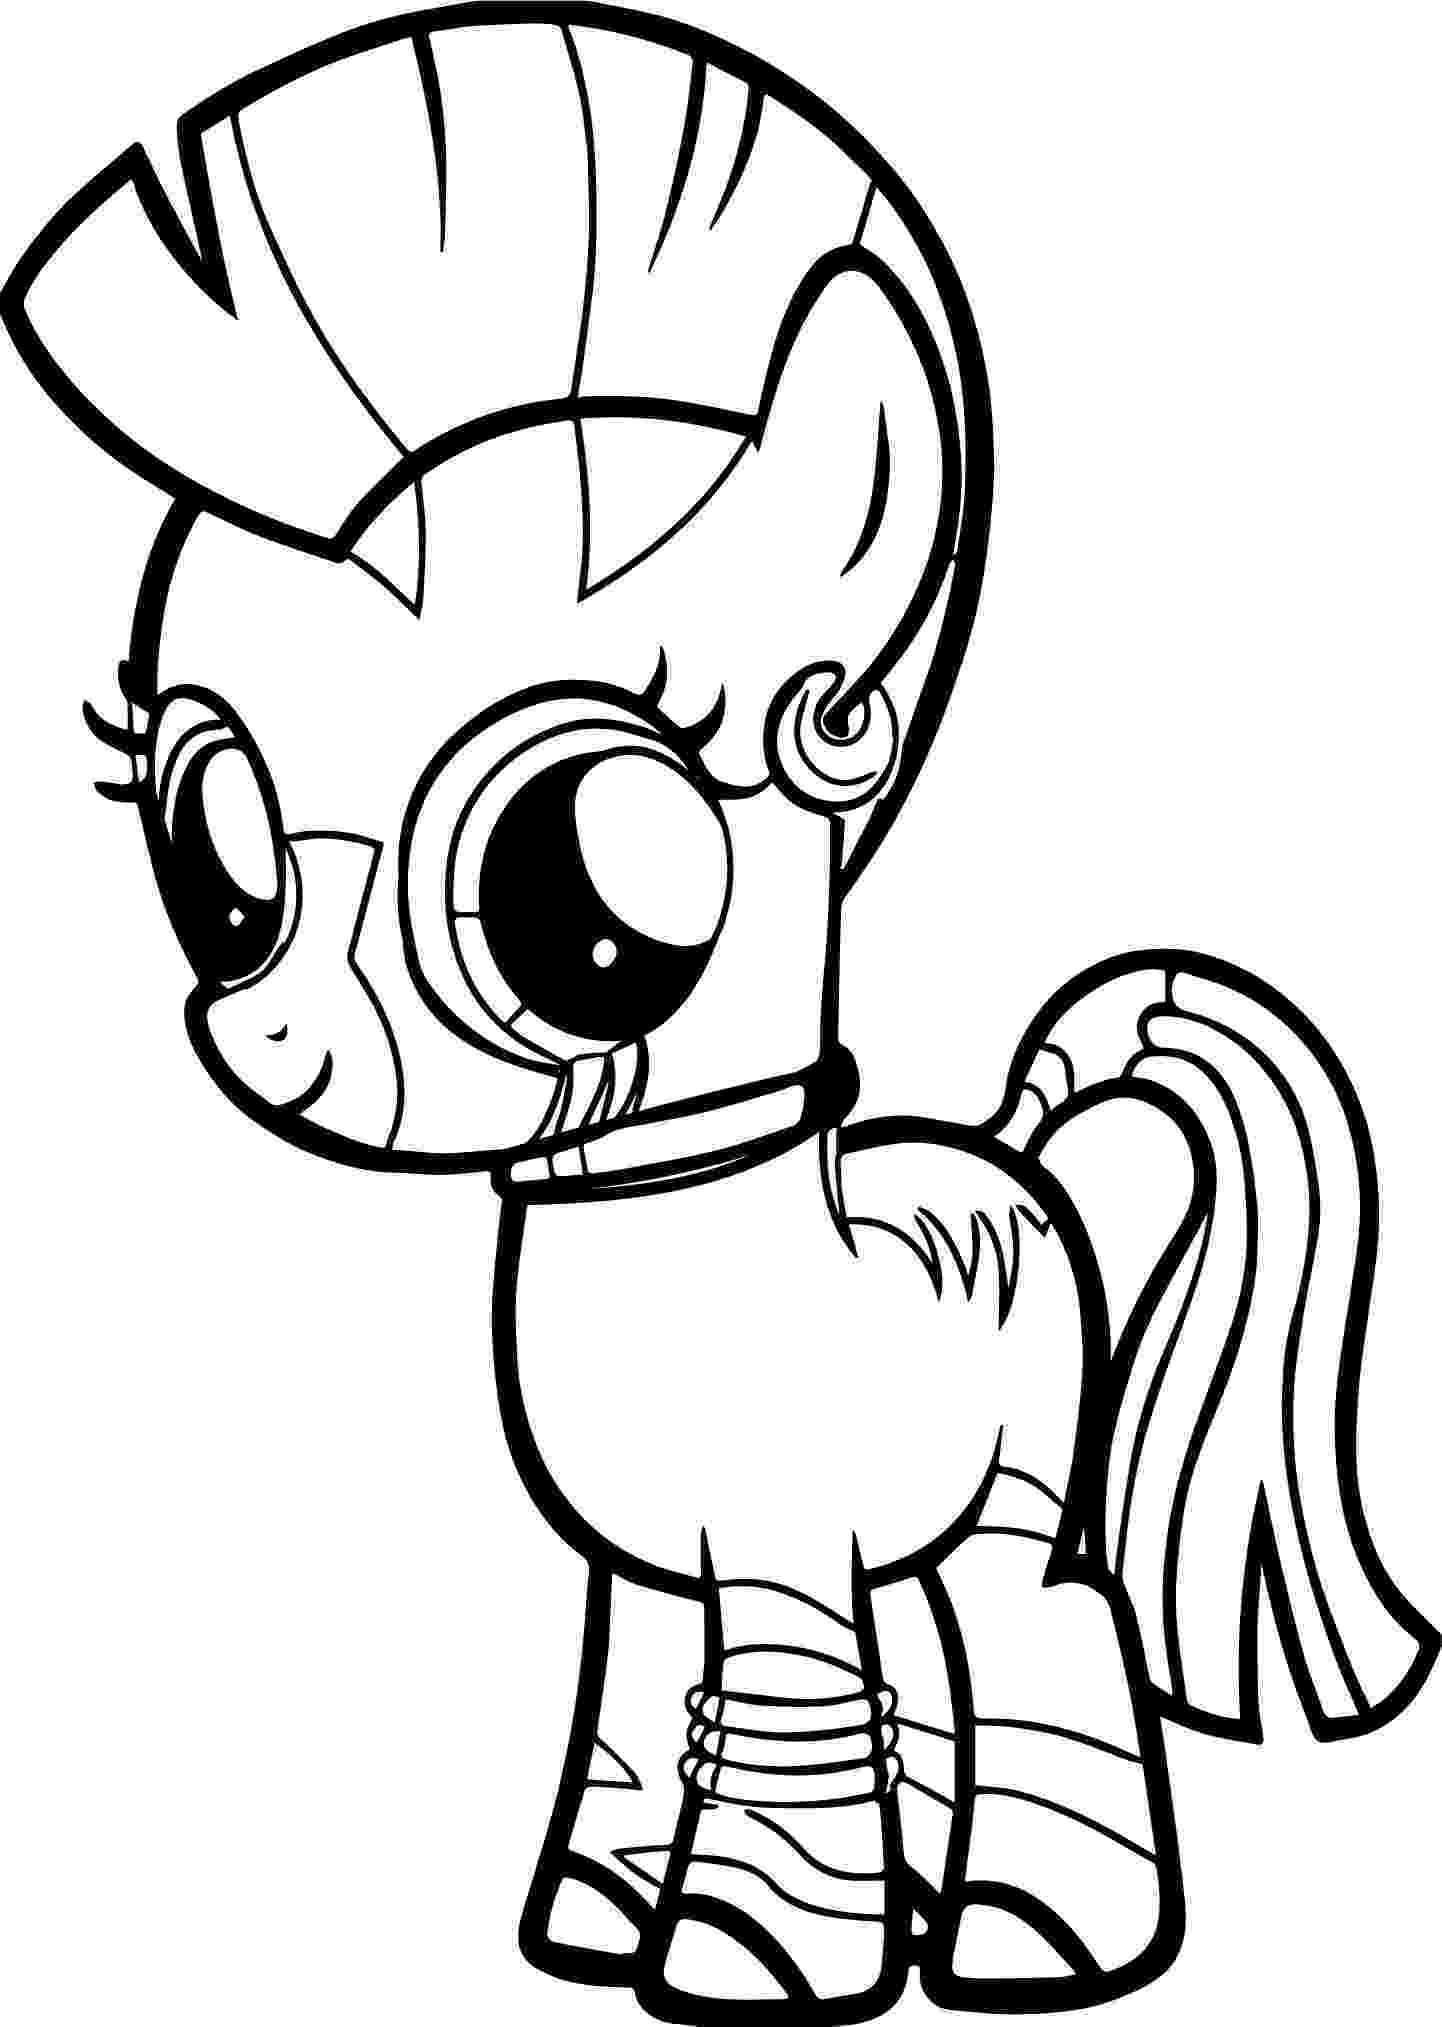 filly coloring pages filly pinkie pie coloring pages get coloring pages coloring filly pages